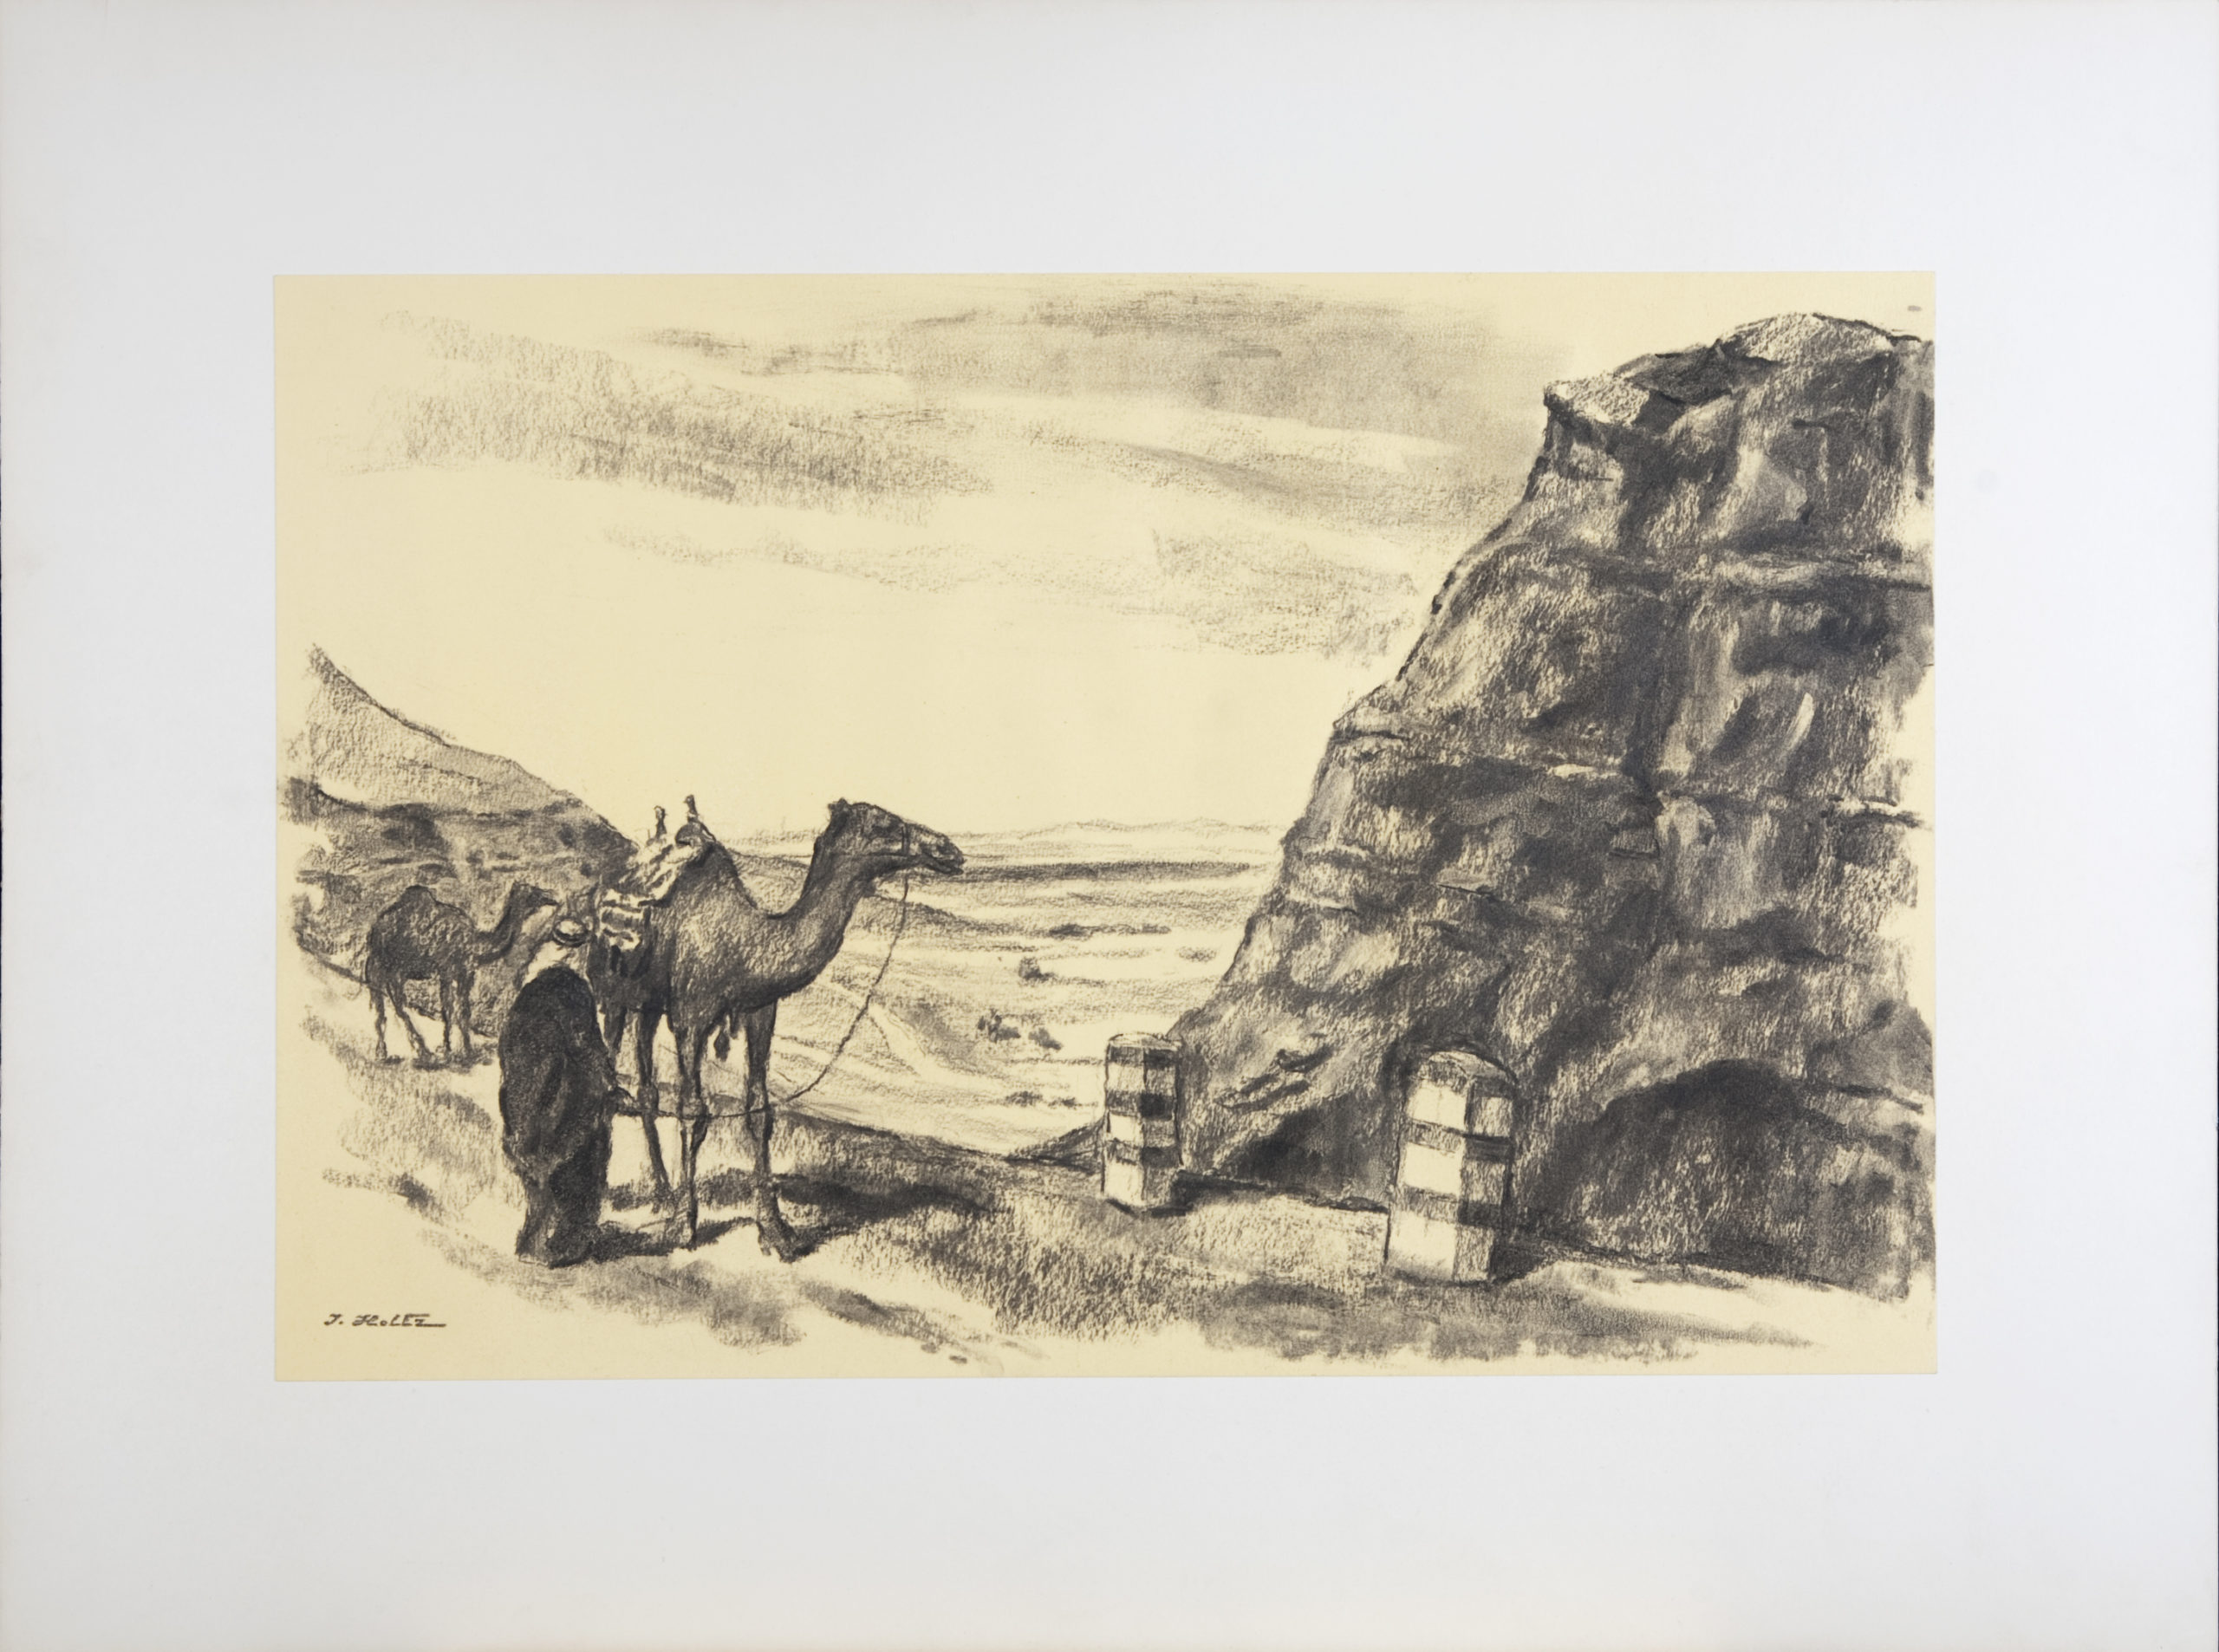 221 Bedouins with Camels 1959 - Charcoal - 18 x 12 - No Frame